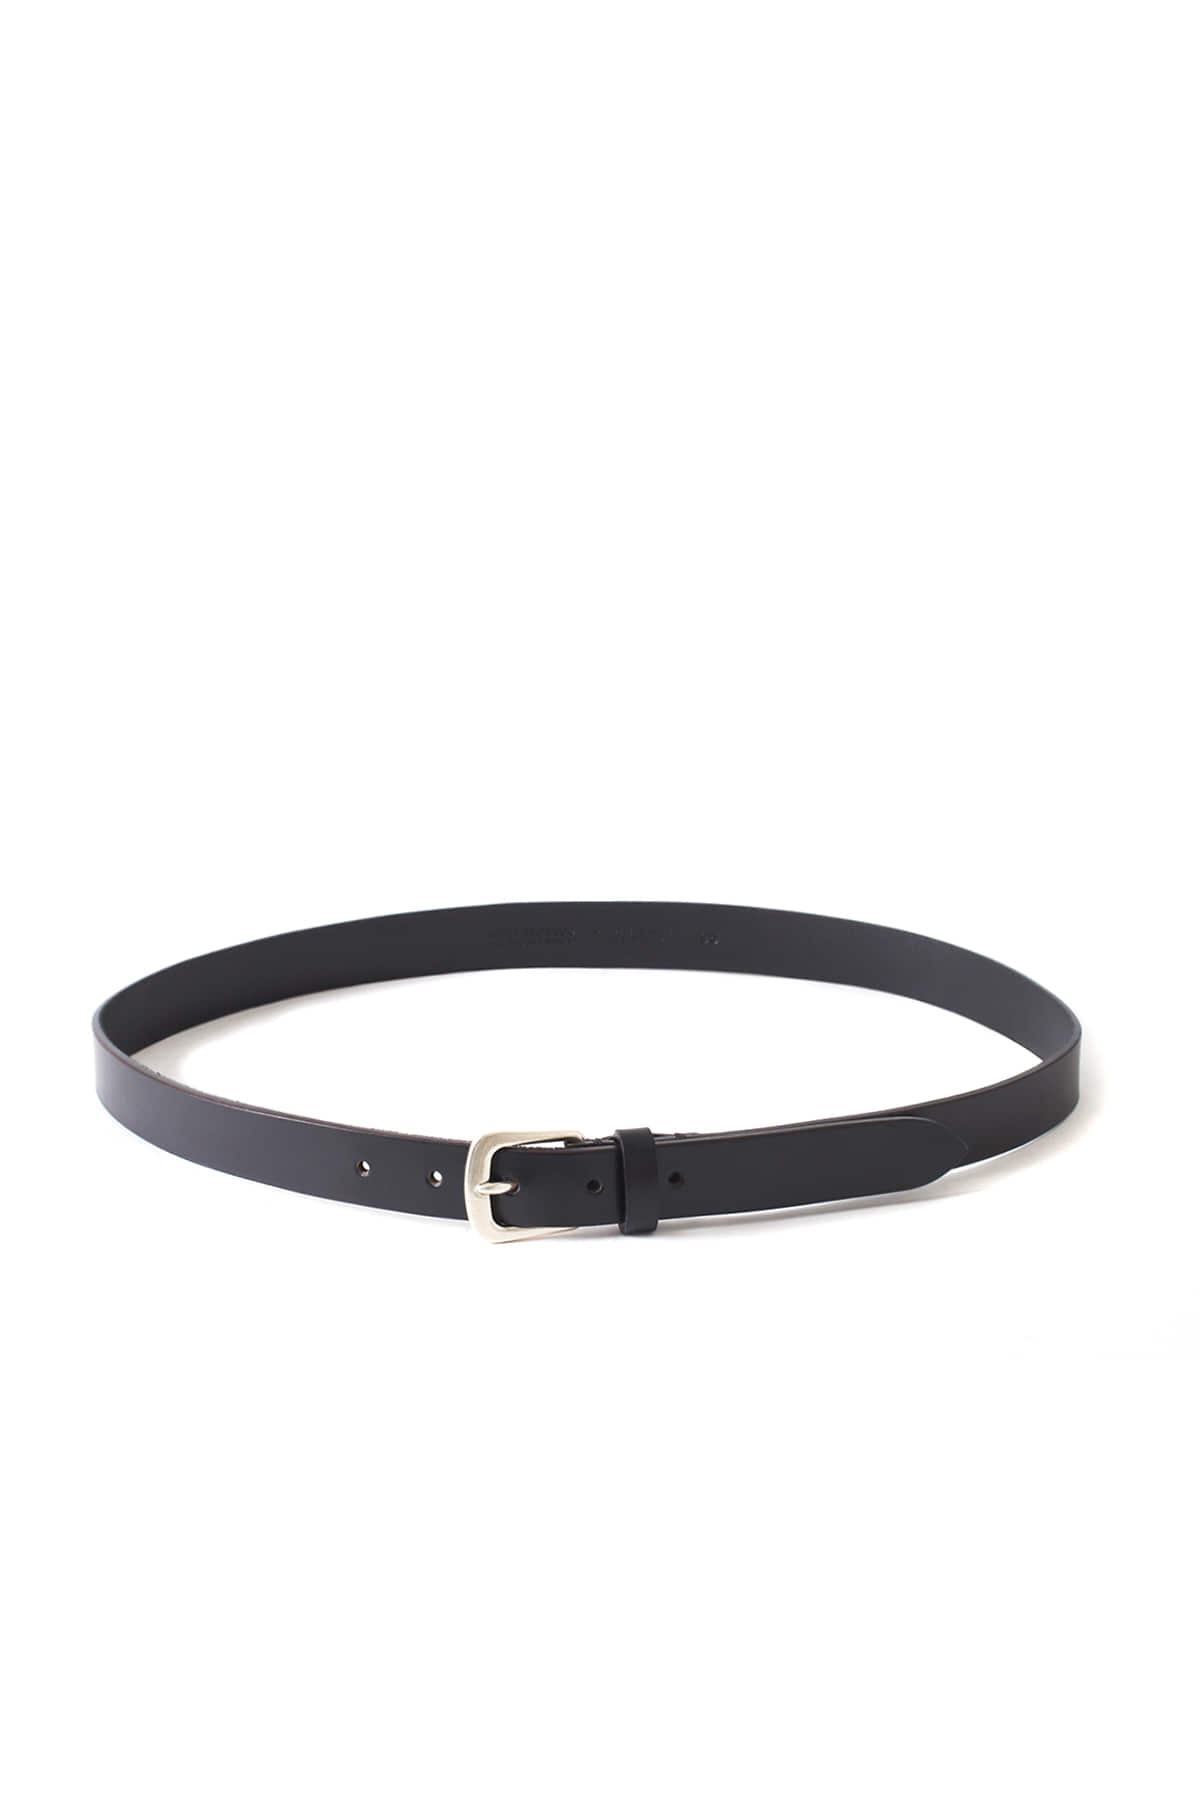 ANDREA GRECO : Dakota Calf Leather Belt (Nero)